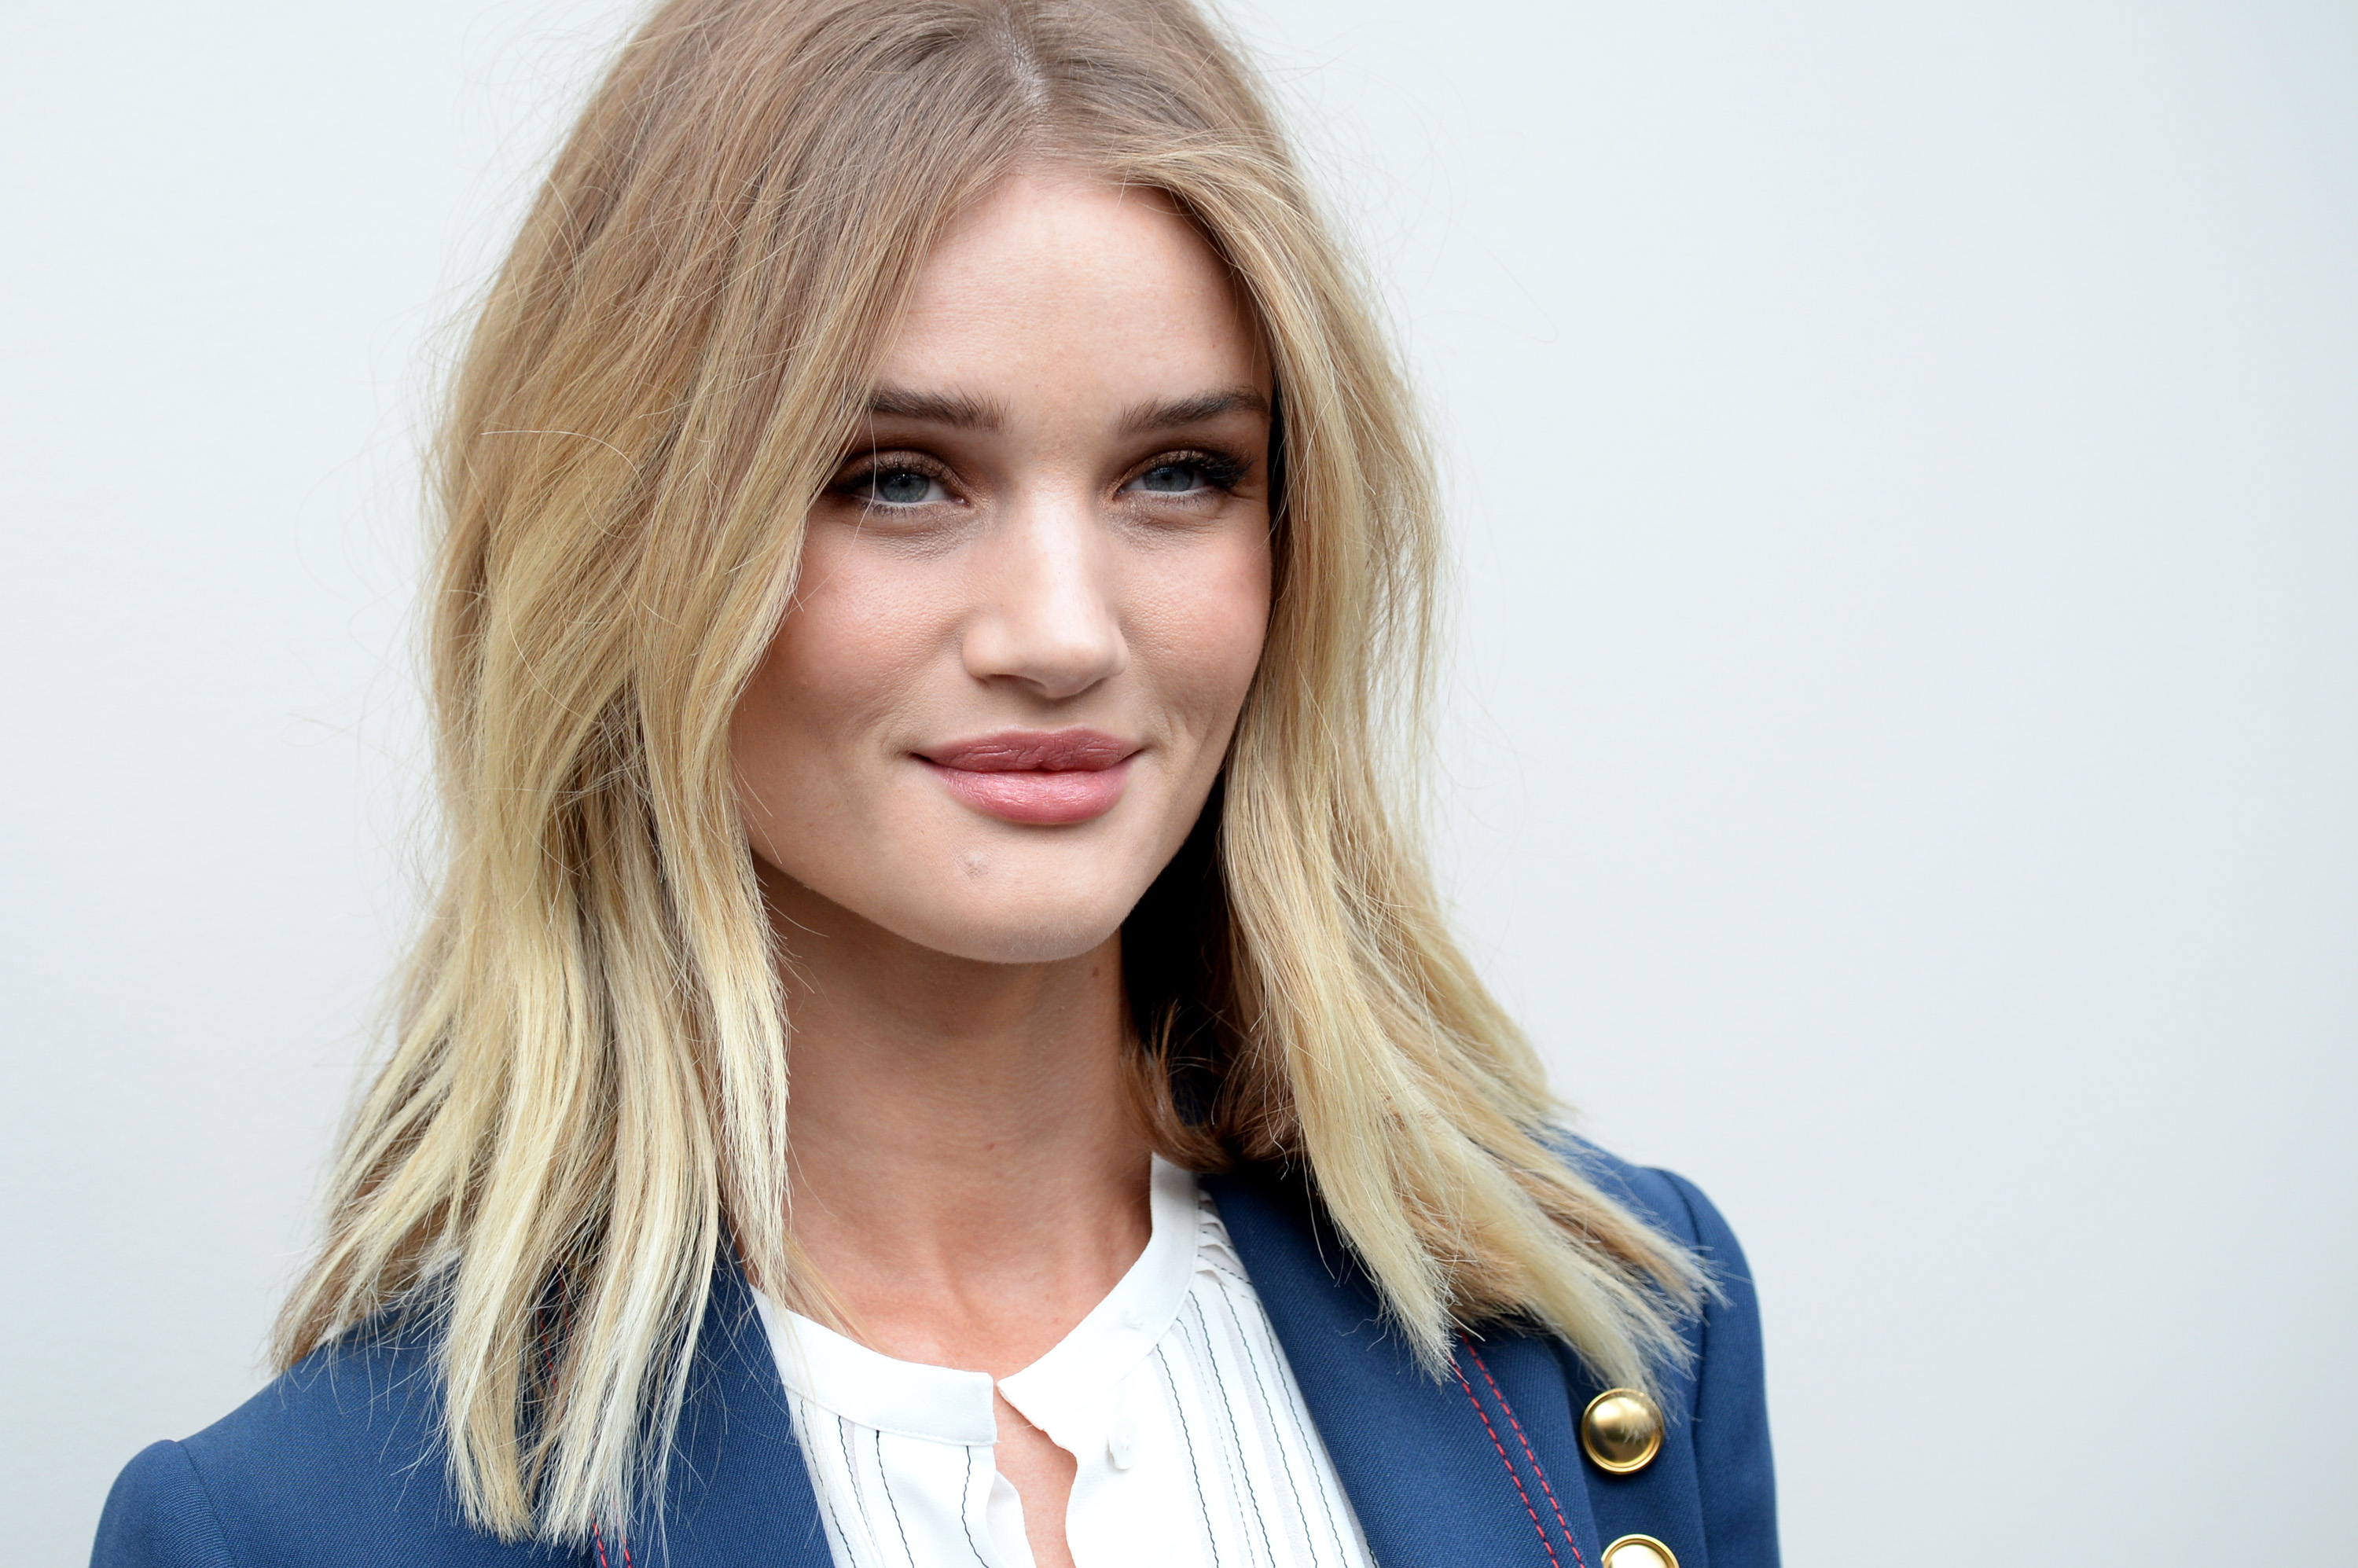 Rosie Huntington-Whiteley Lost Her Eyelashes During the Filming of 'Mad Max'